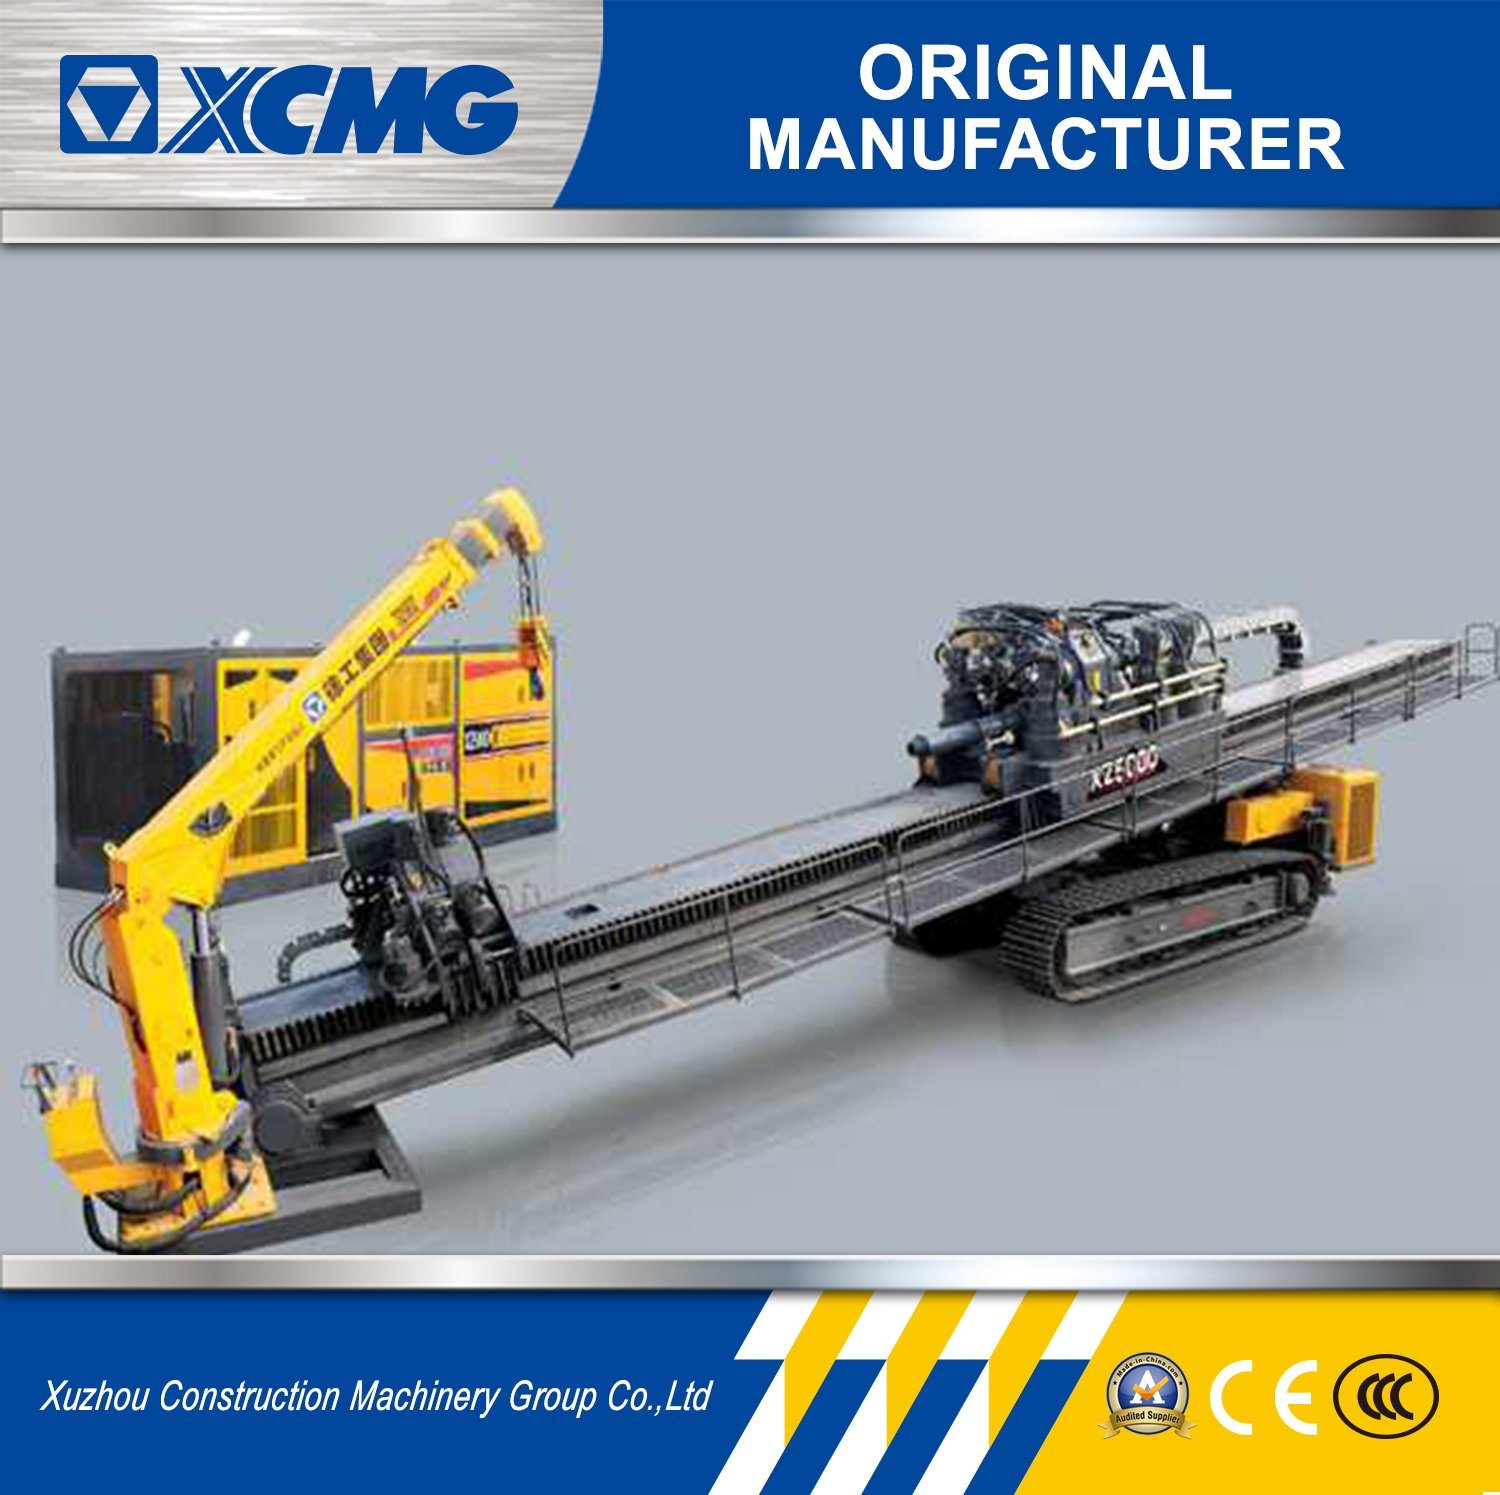 [Hot Item] XCMG Official Manufacturer Xz5000 Horizontal Directional  Drilling Rig